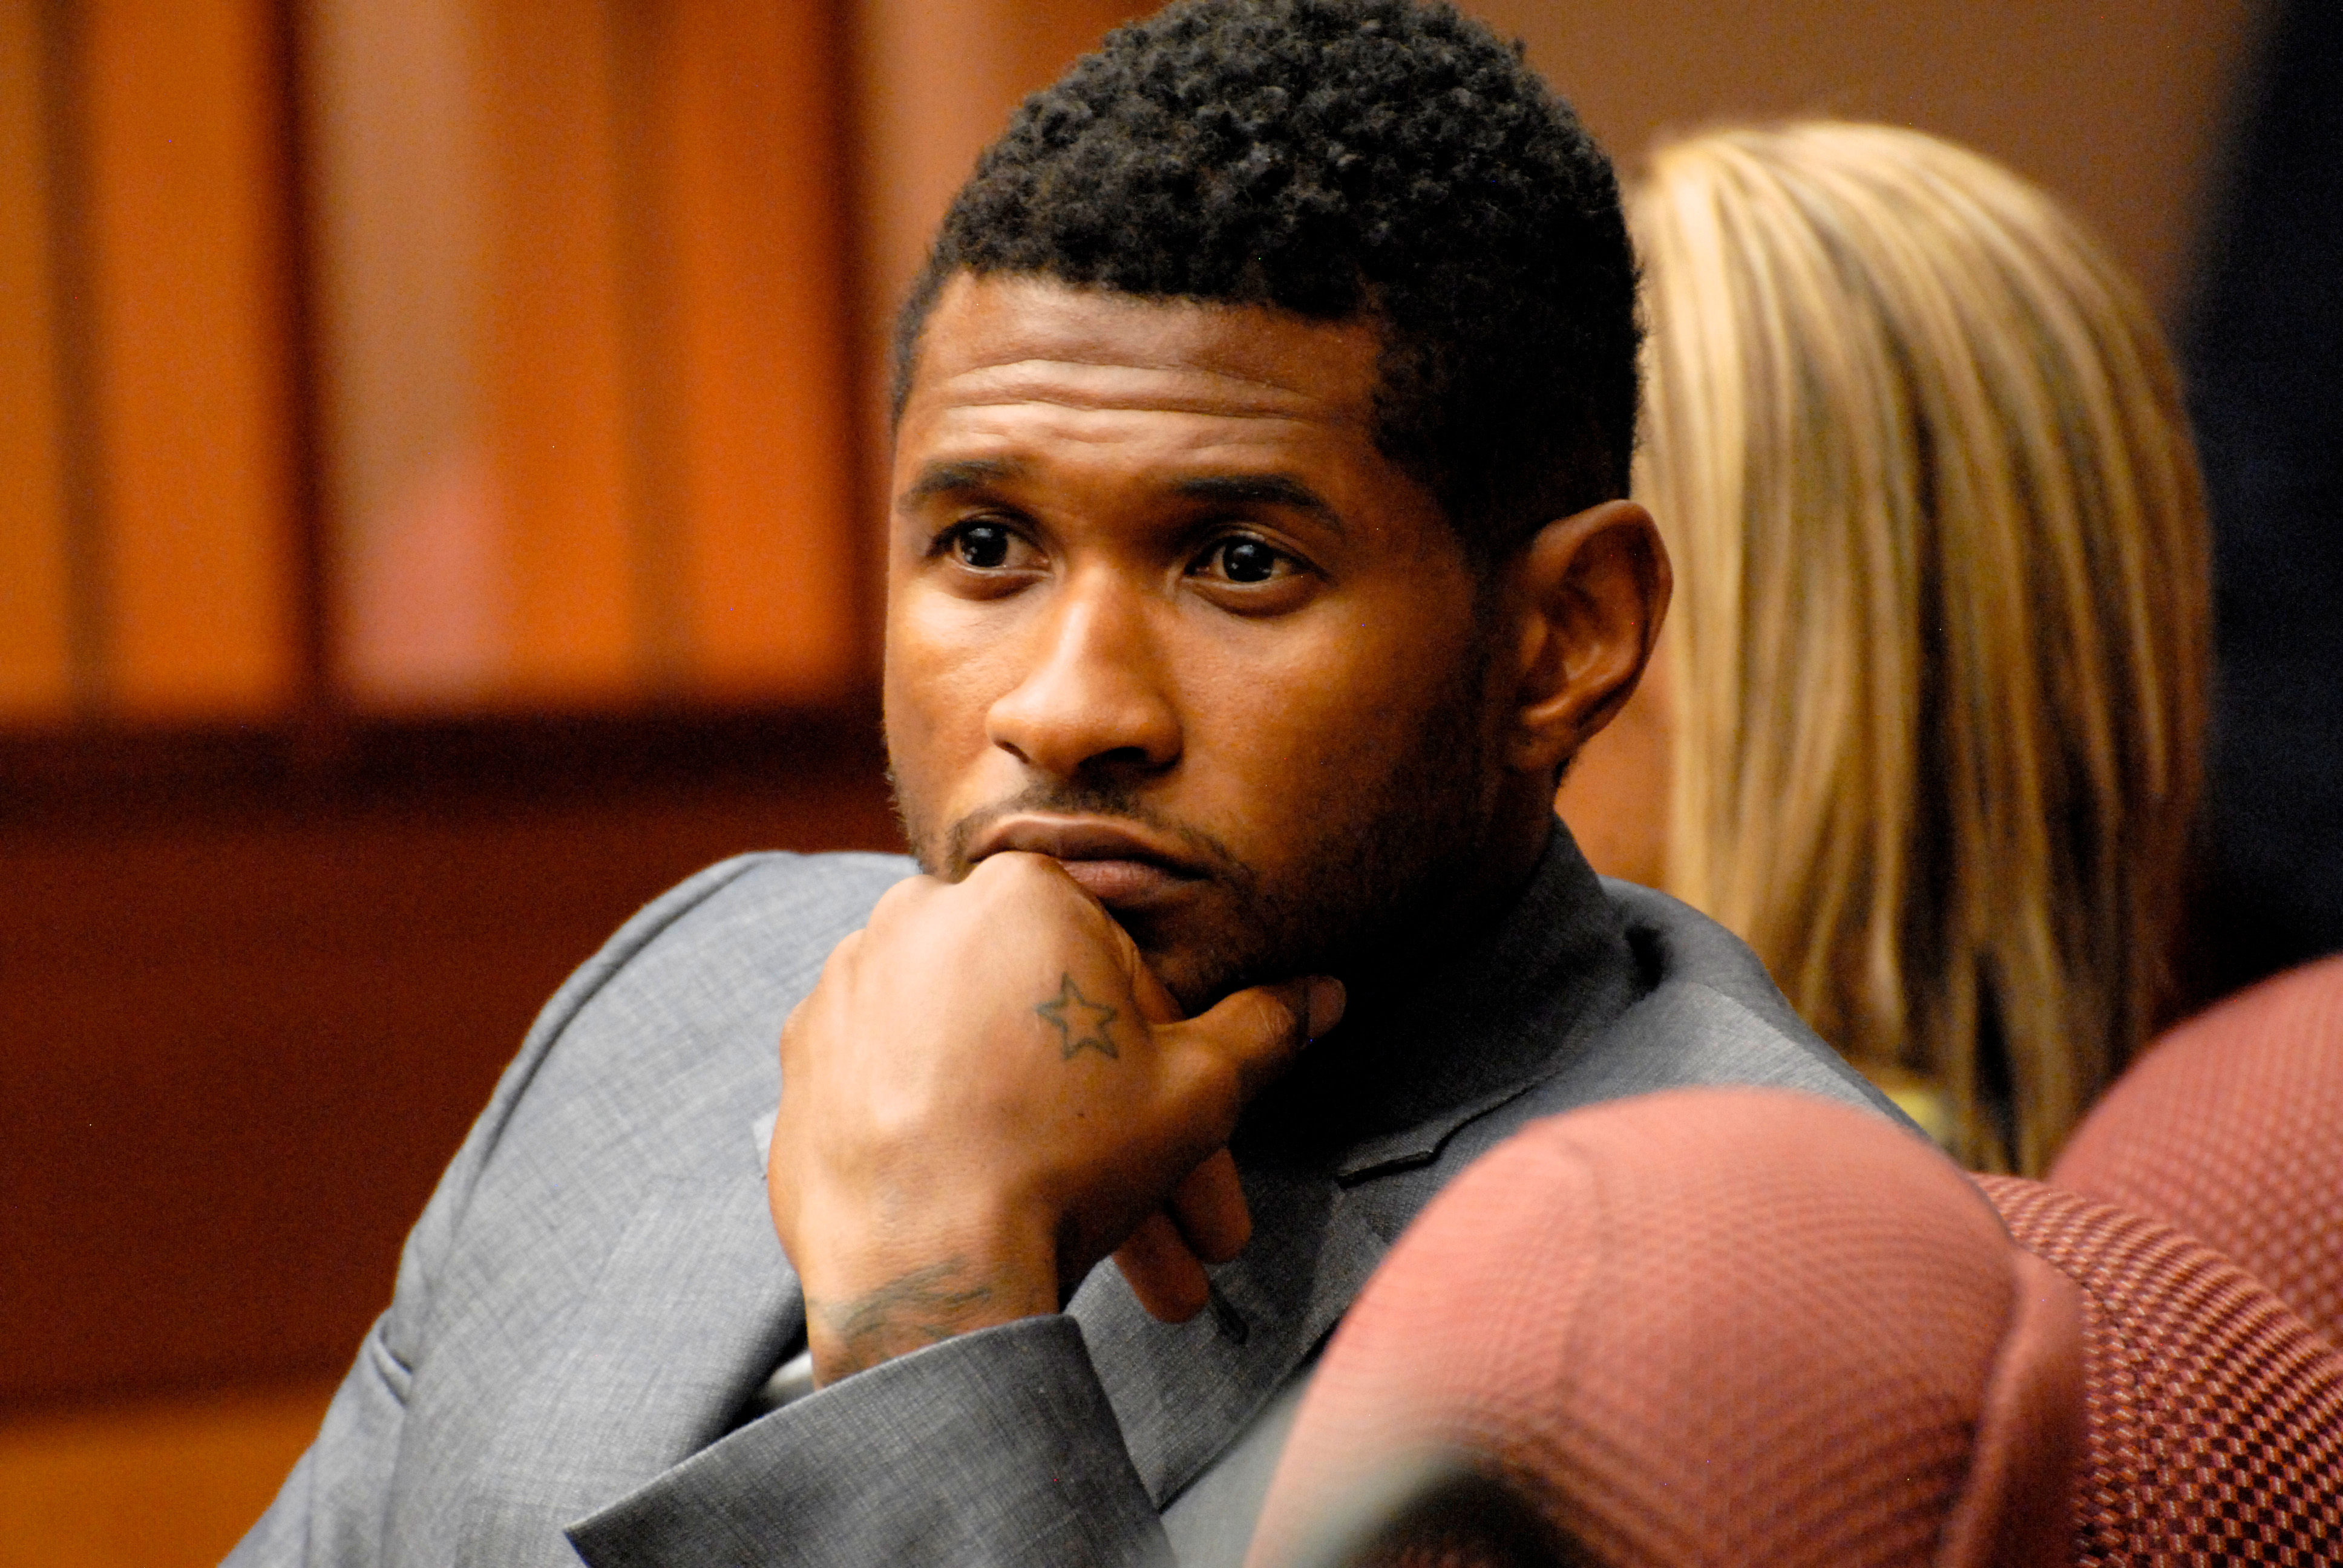 Usher Raymond attends a hearing to discuss child custody with his ex-wife Tameka Foster at Fulton County State Court on August 16, 2012 in Atlanta, Georgia.